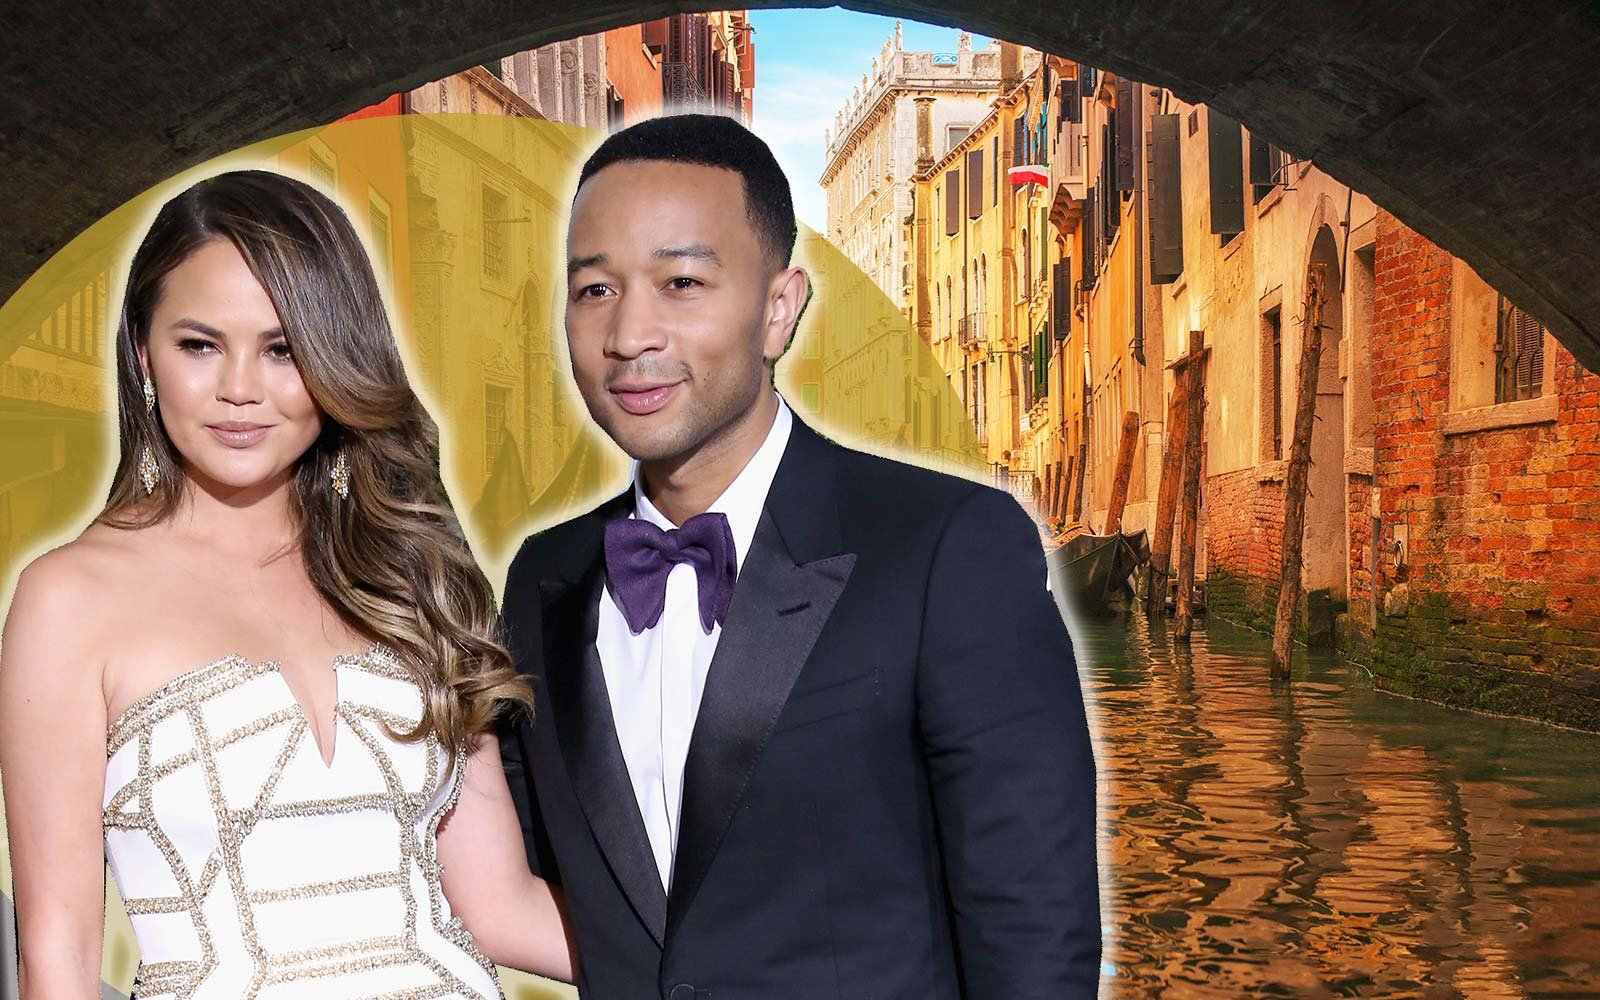 Chrissy Teigen John Legend Venice Italy Holiday Summer Travel Vacation